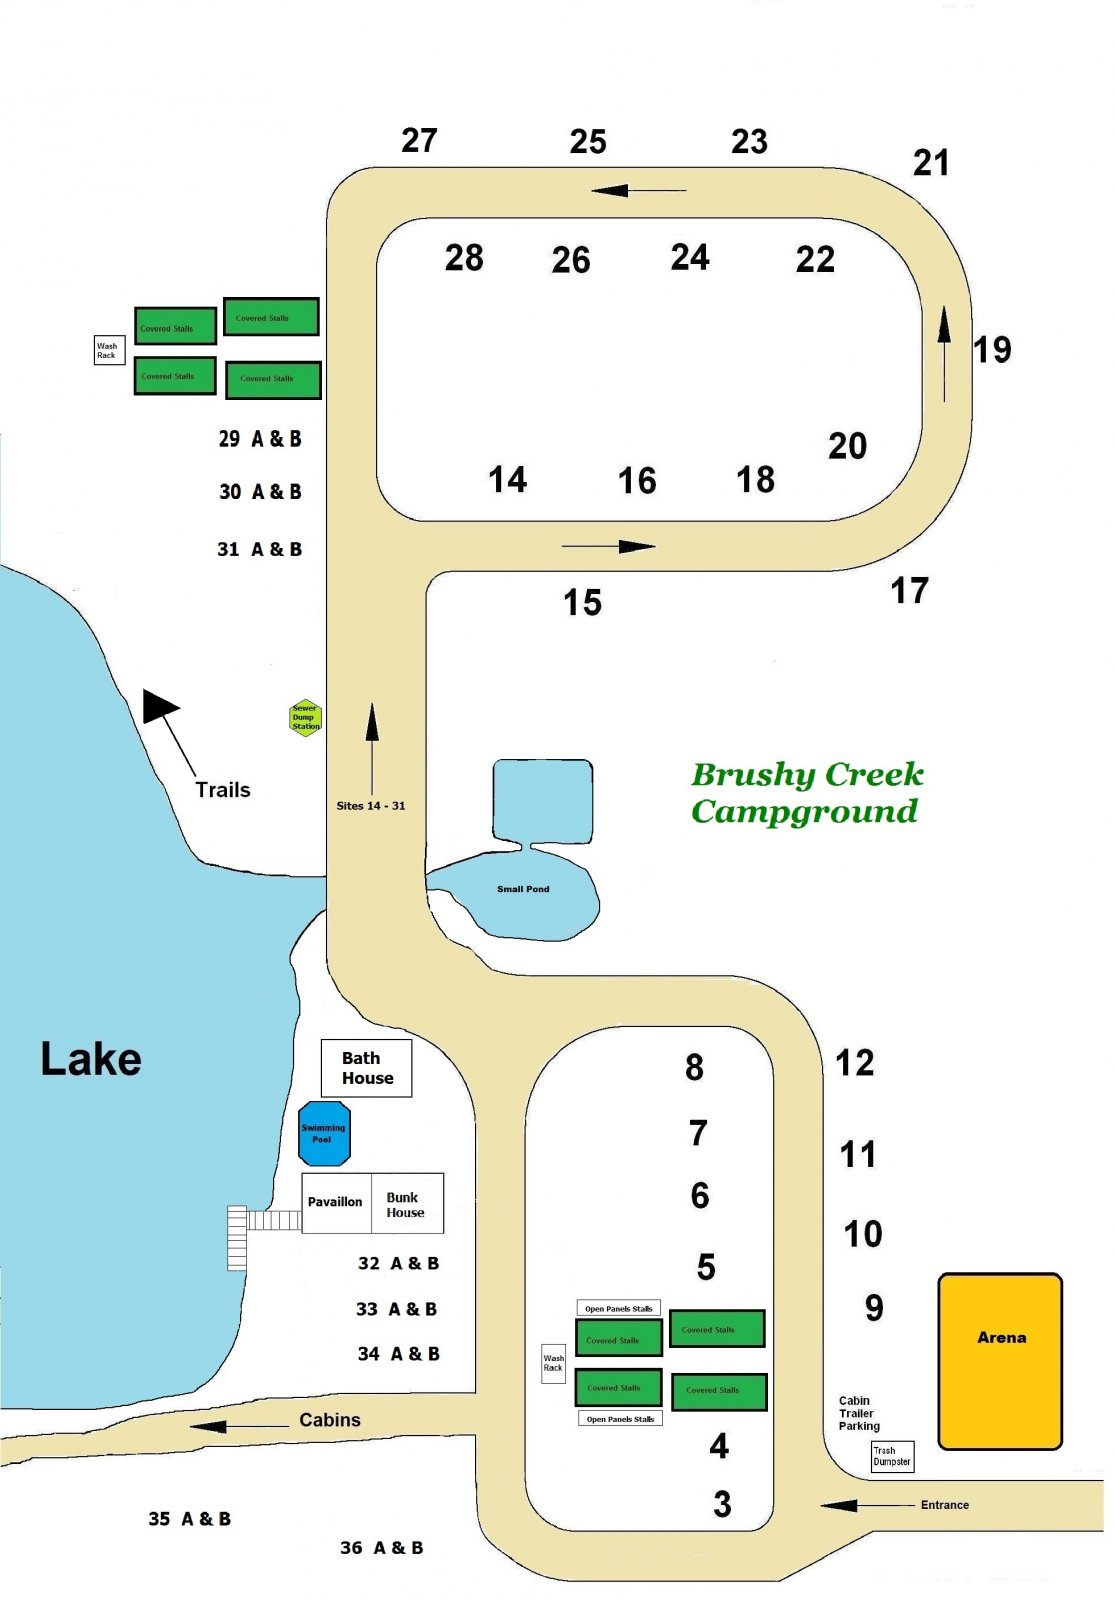 Brushy Creek Ranch Campground Map